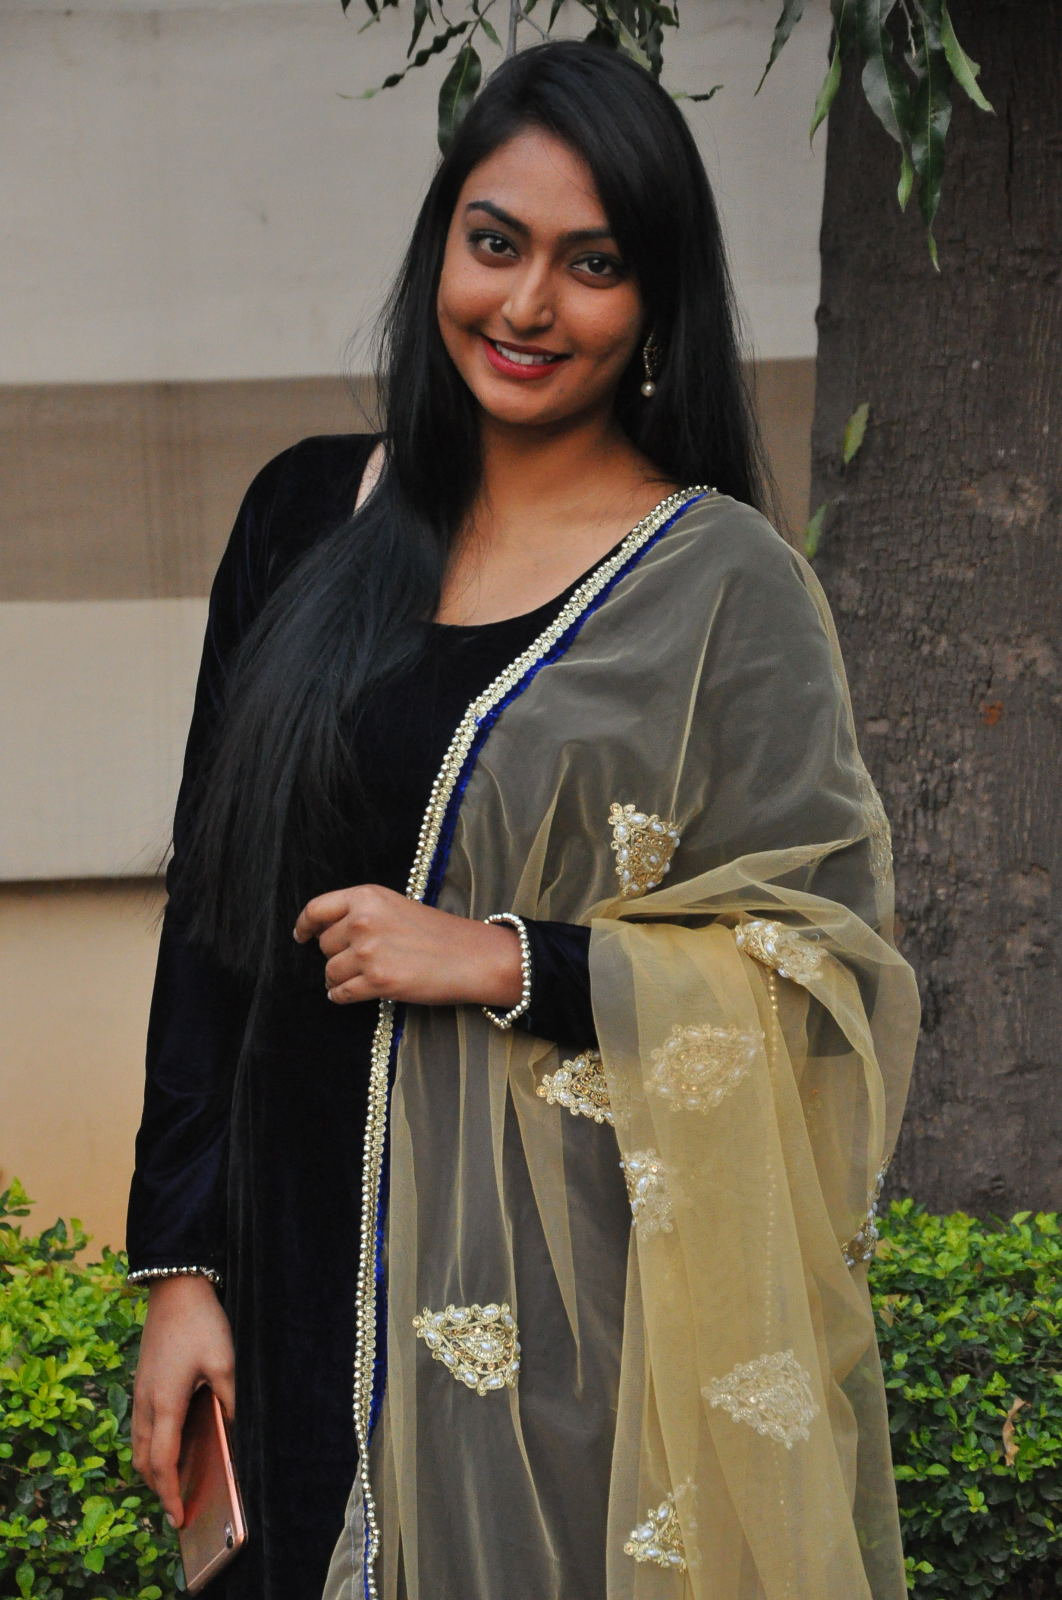 Grace Myrtle Beautiful Photo Stills Of Cute Actress Grace Myrtle | South Actresses Gracemyrtle 5